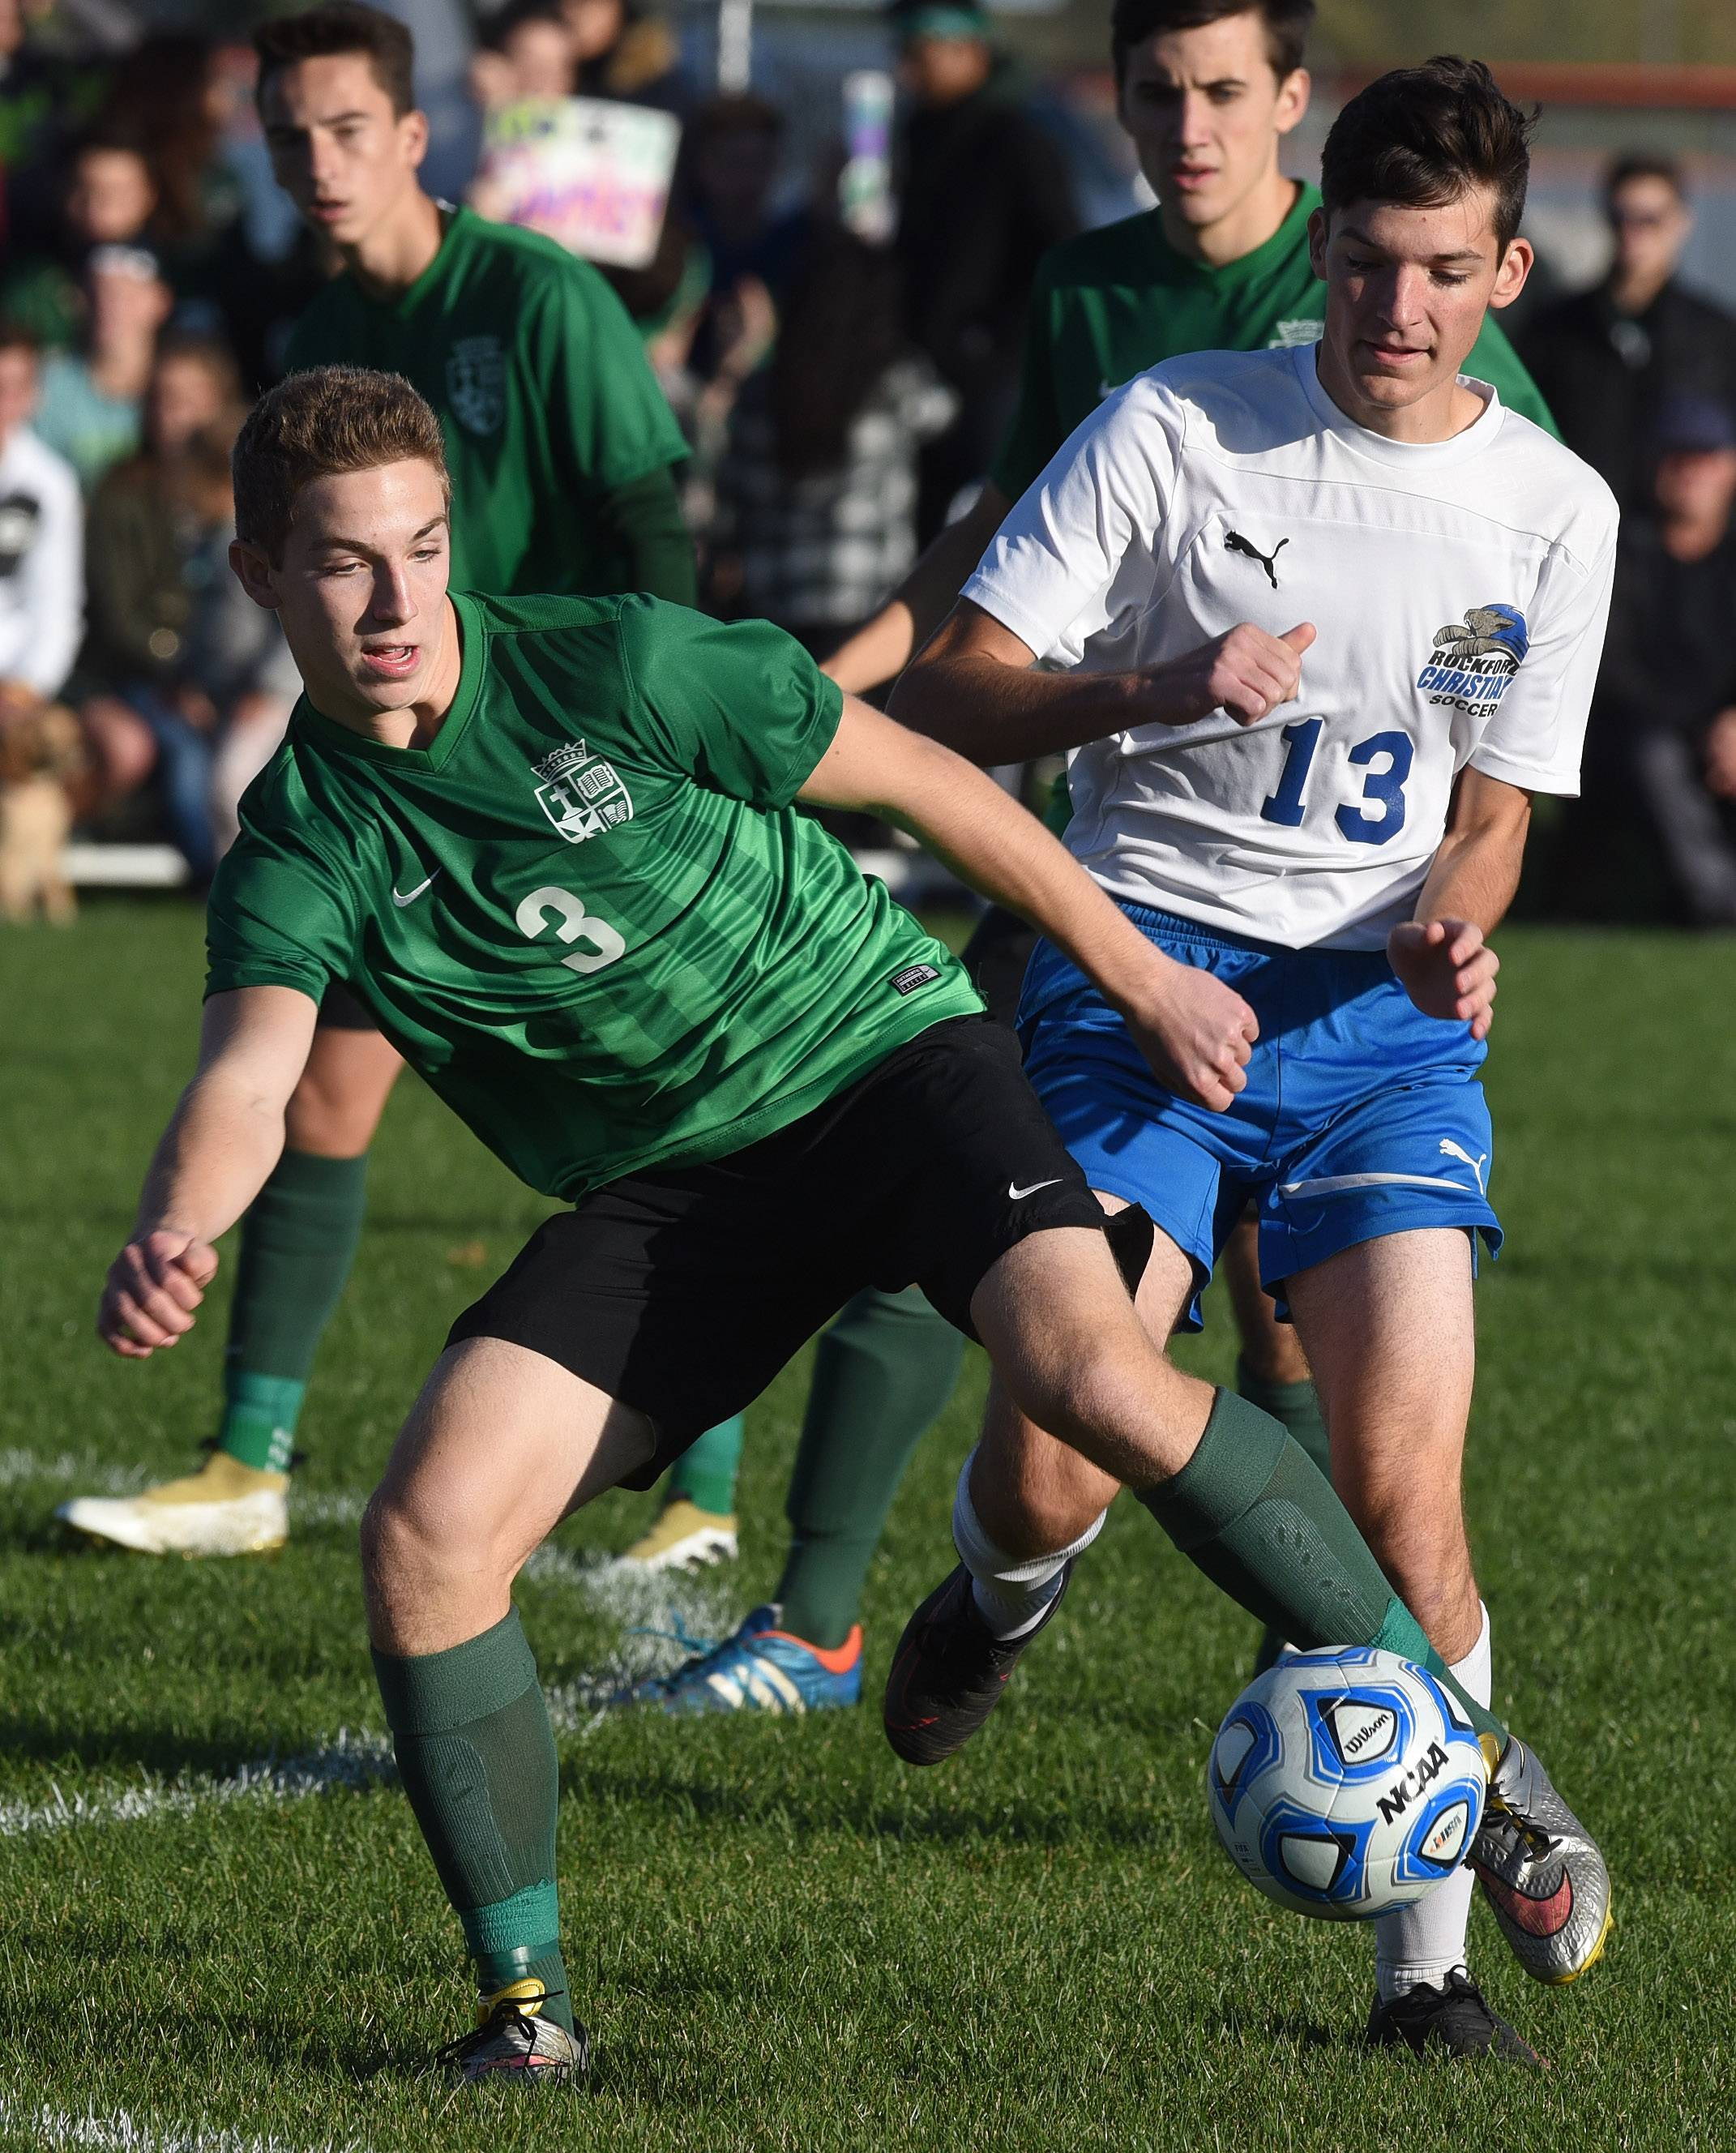 Boys soccer: First sectional crown for St. Edward